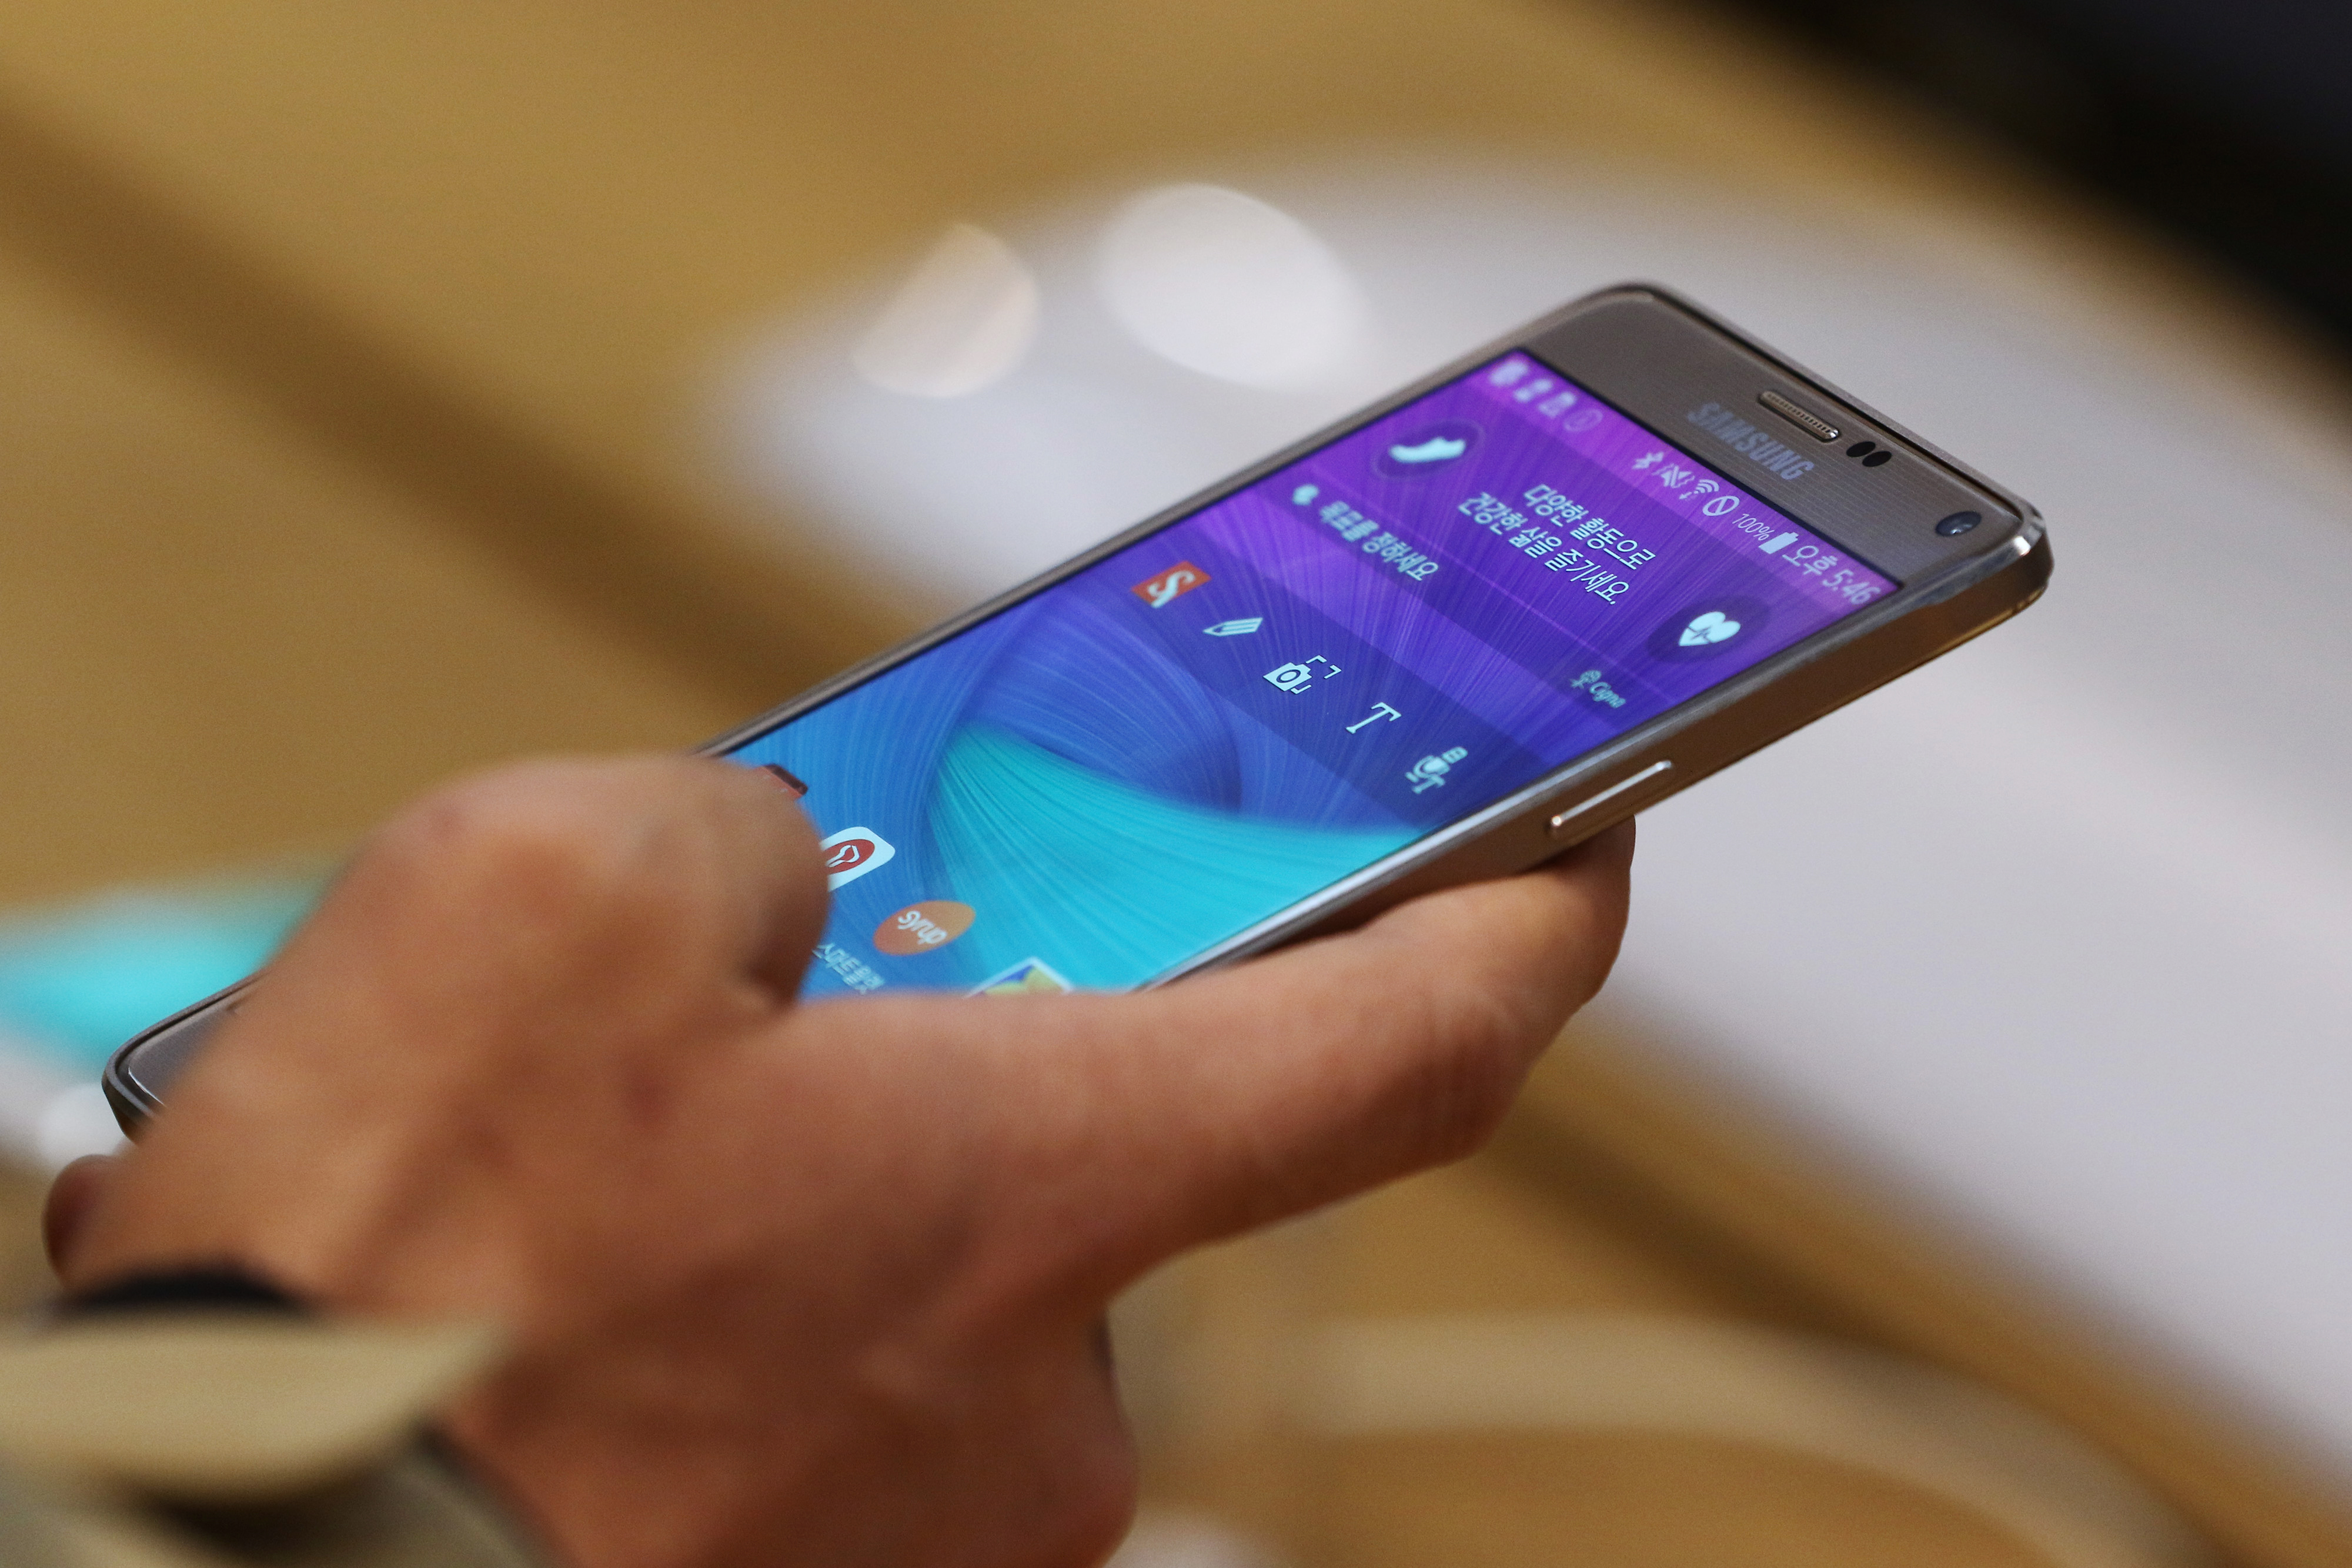 A visitor tries out a Samsung Electronics Co. Galaxy Note 4 smartphone at the company's d'light flagship store in Seoul, South Korea, on Tuesday, Jan. 27, 2015.